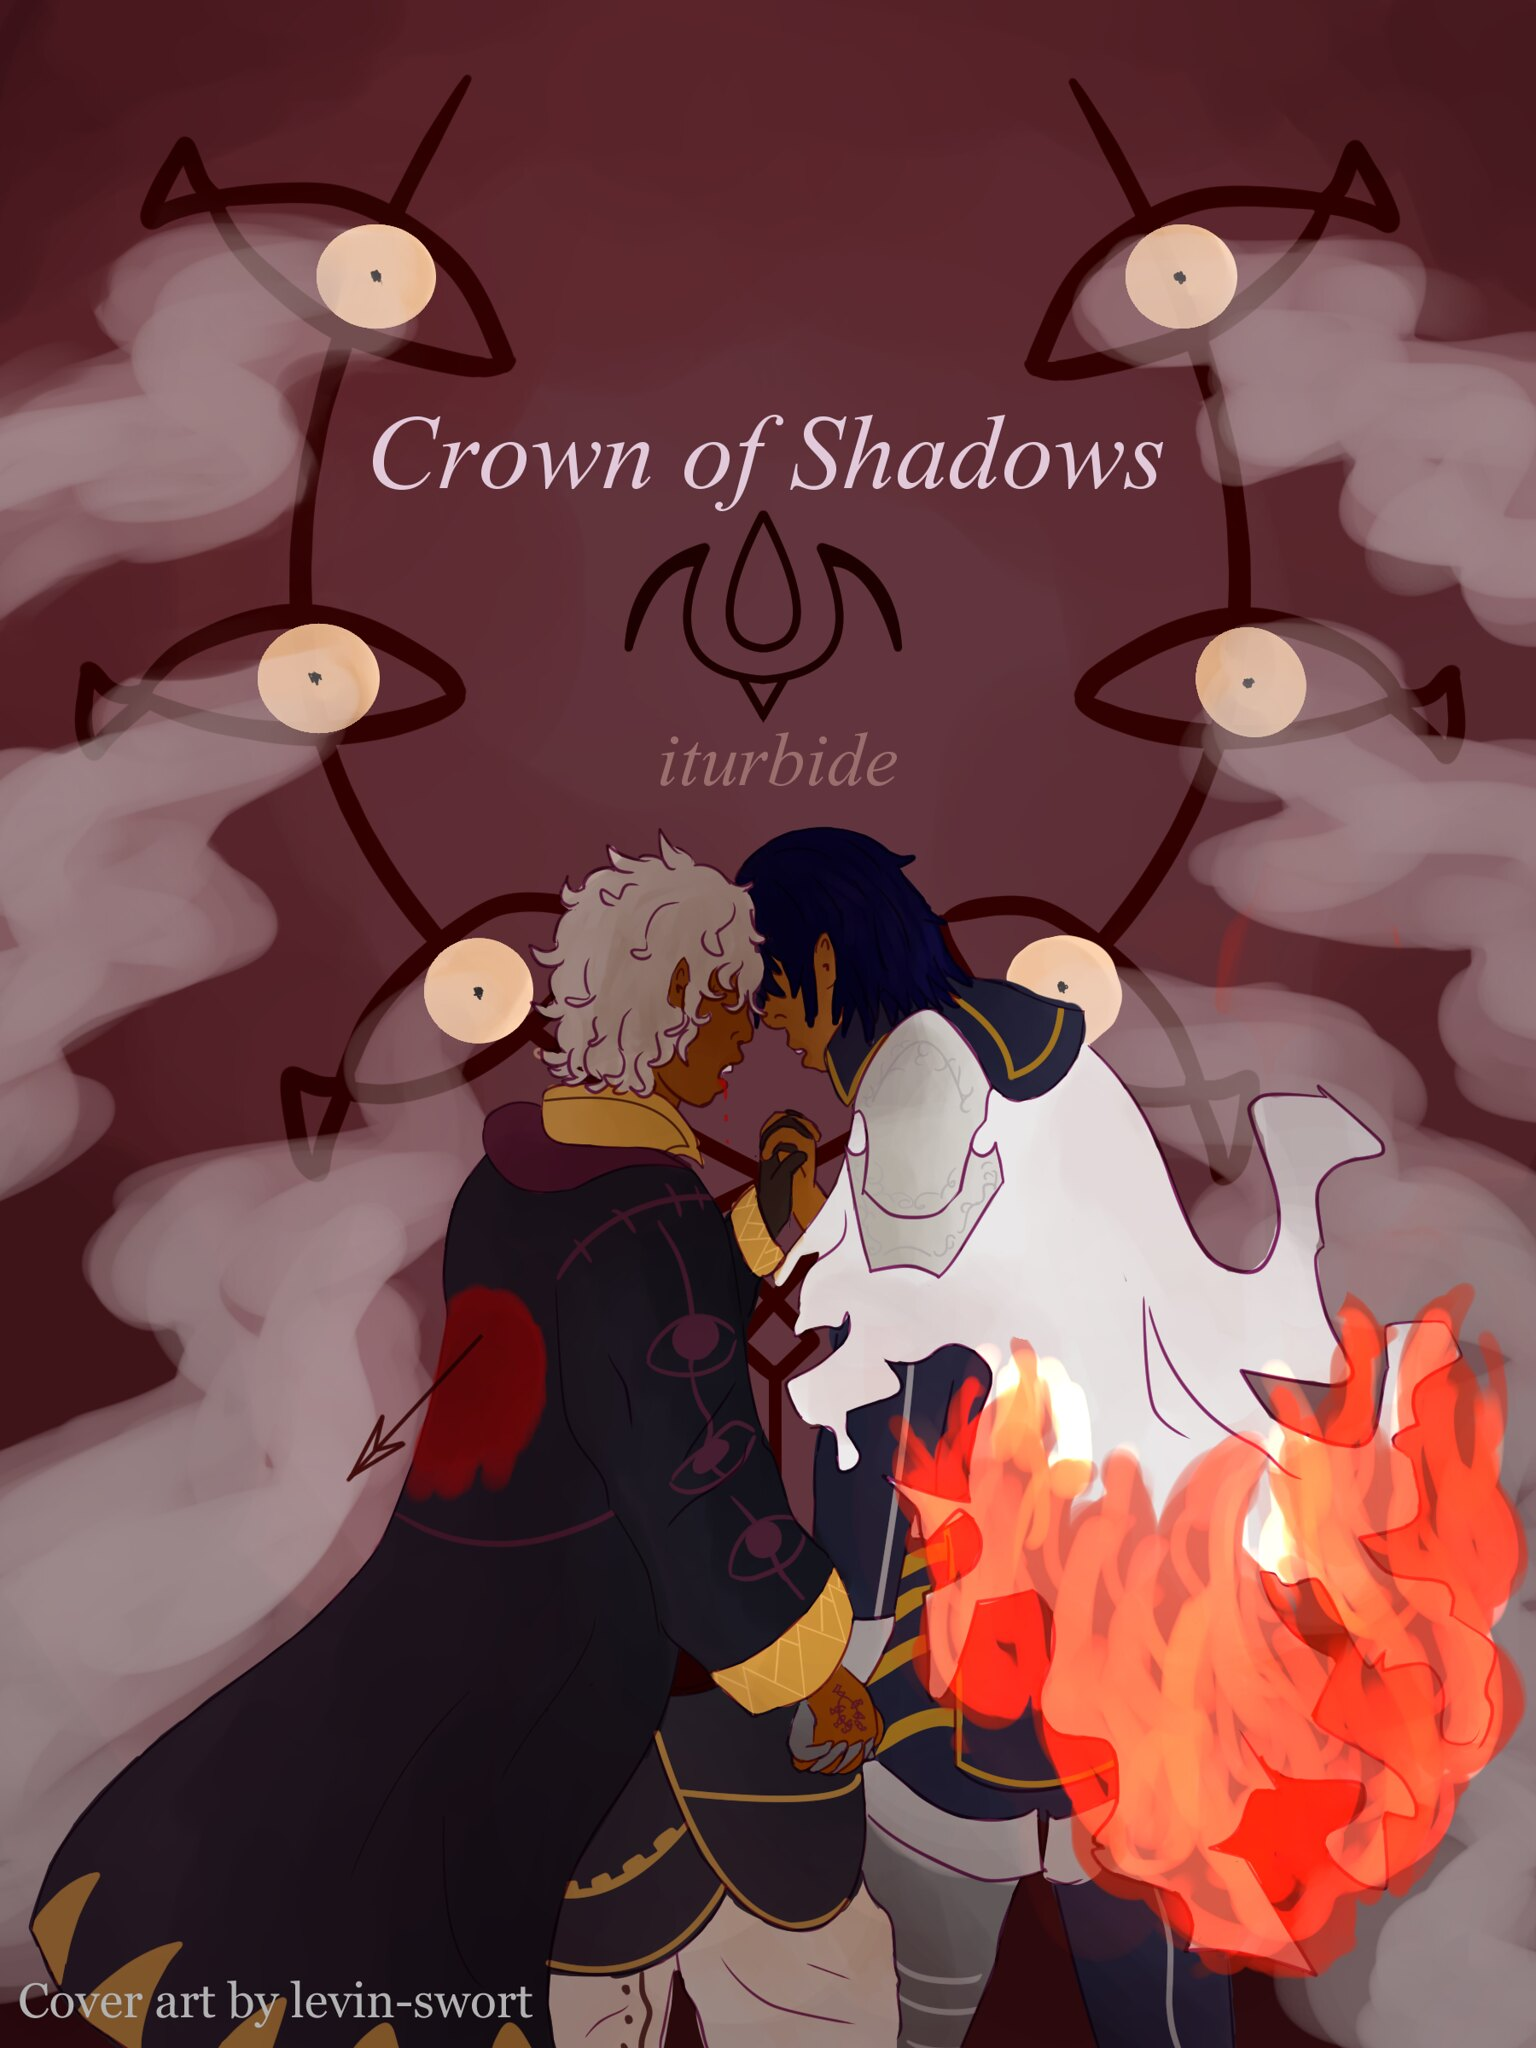 Crown of Shadows Coverplate Illustration by levin-swort